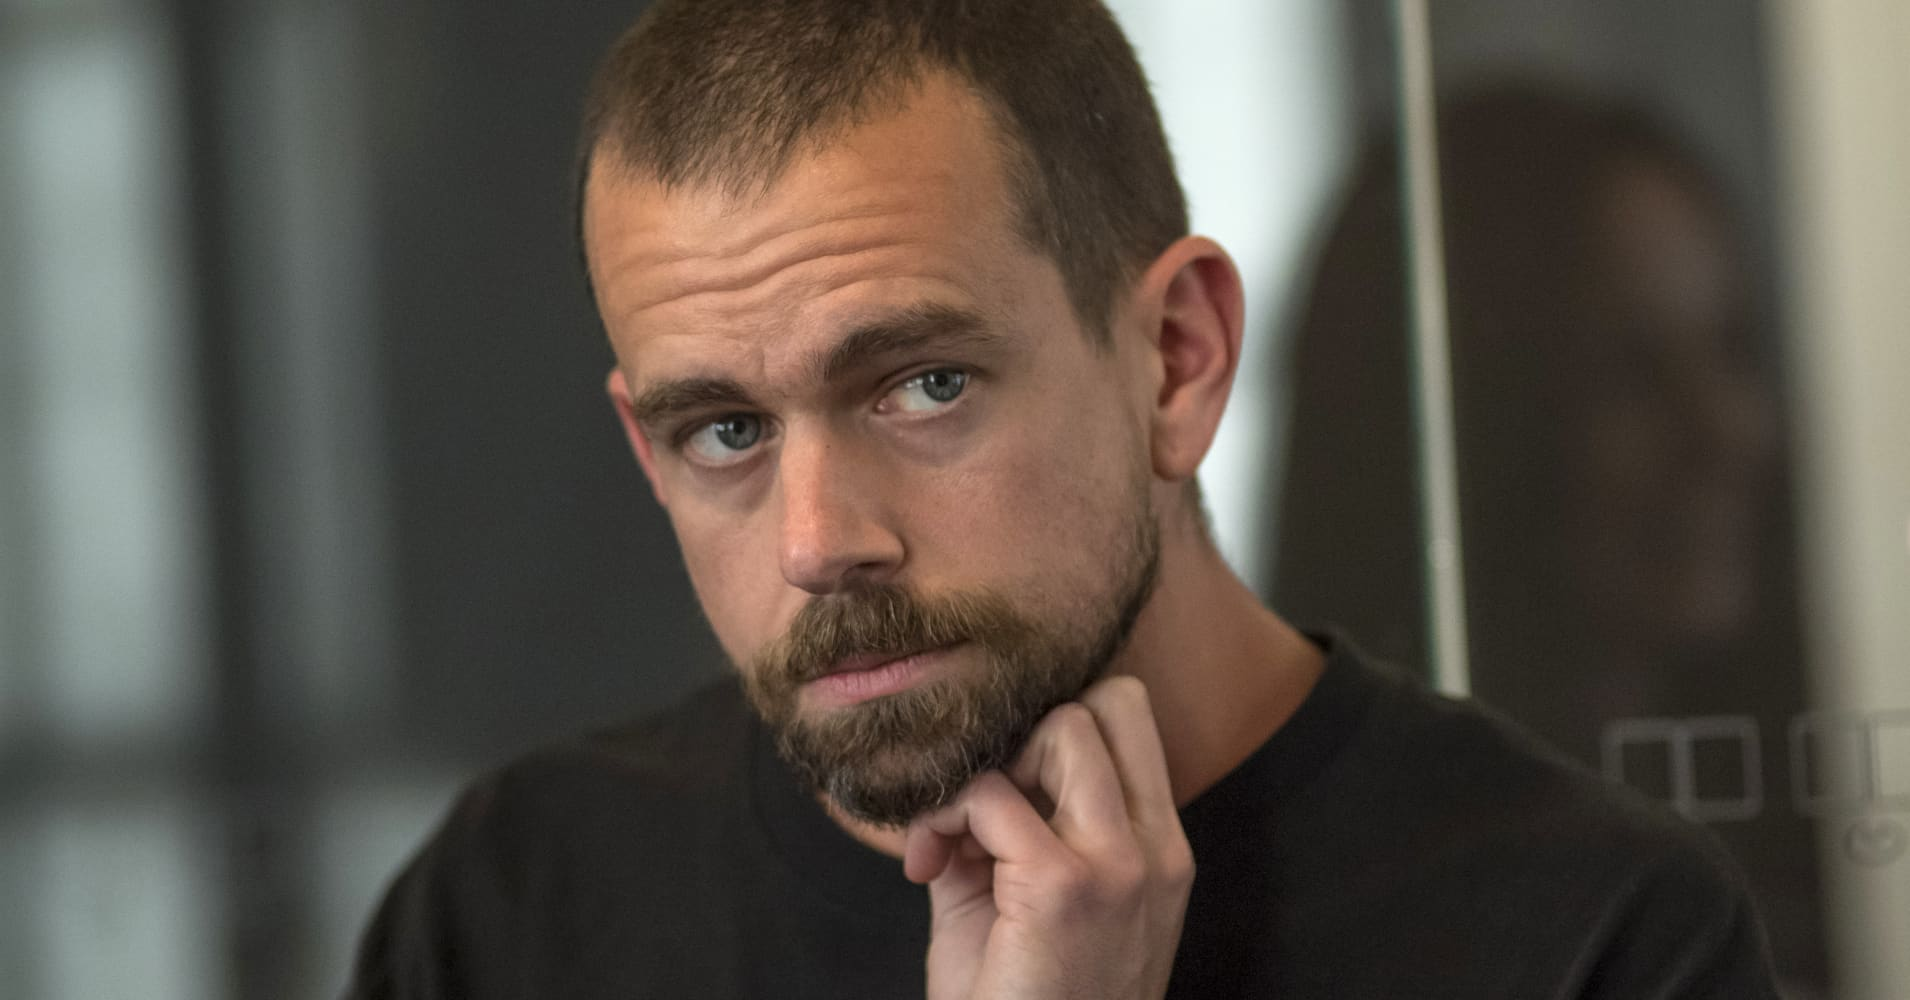 Jack Dorsey expects bitcoin to become the world's 'single currency' in about 10 years